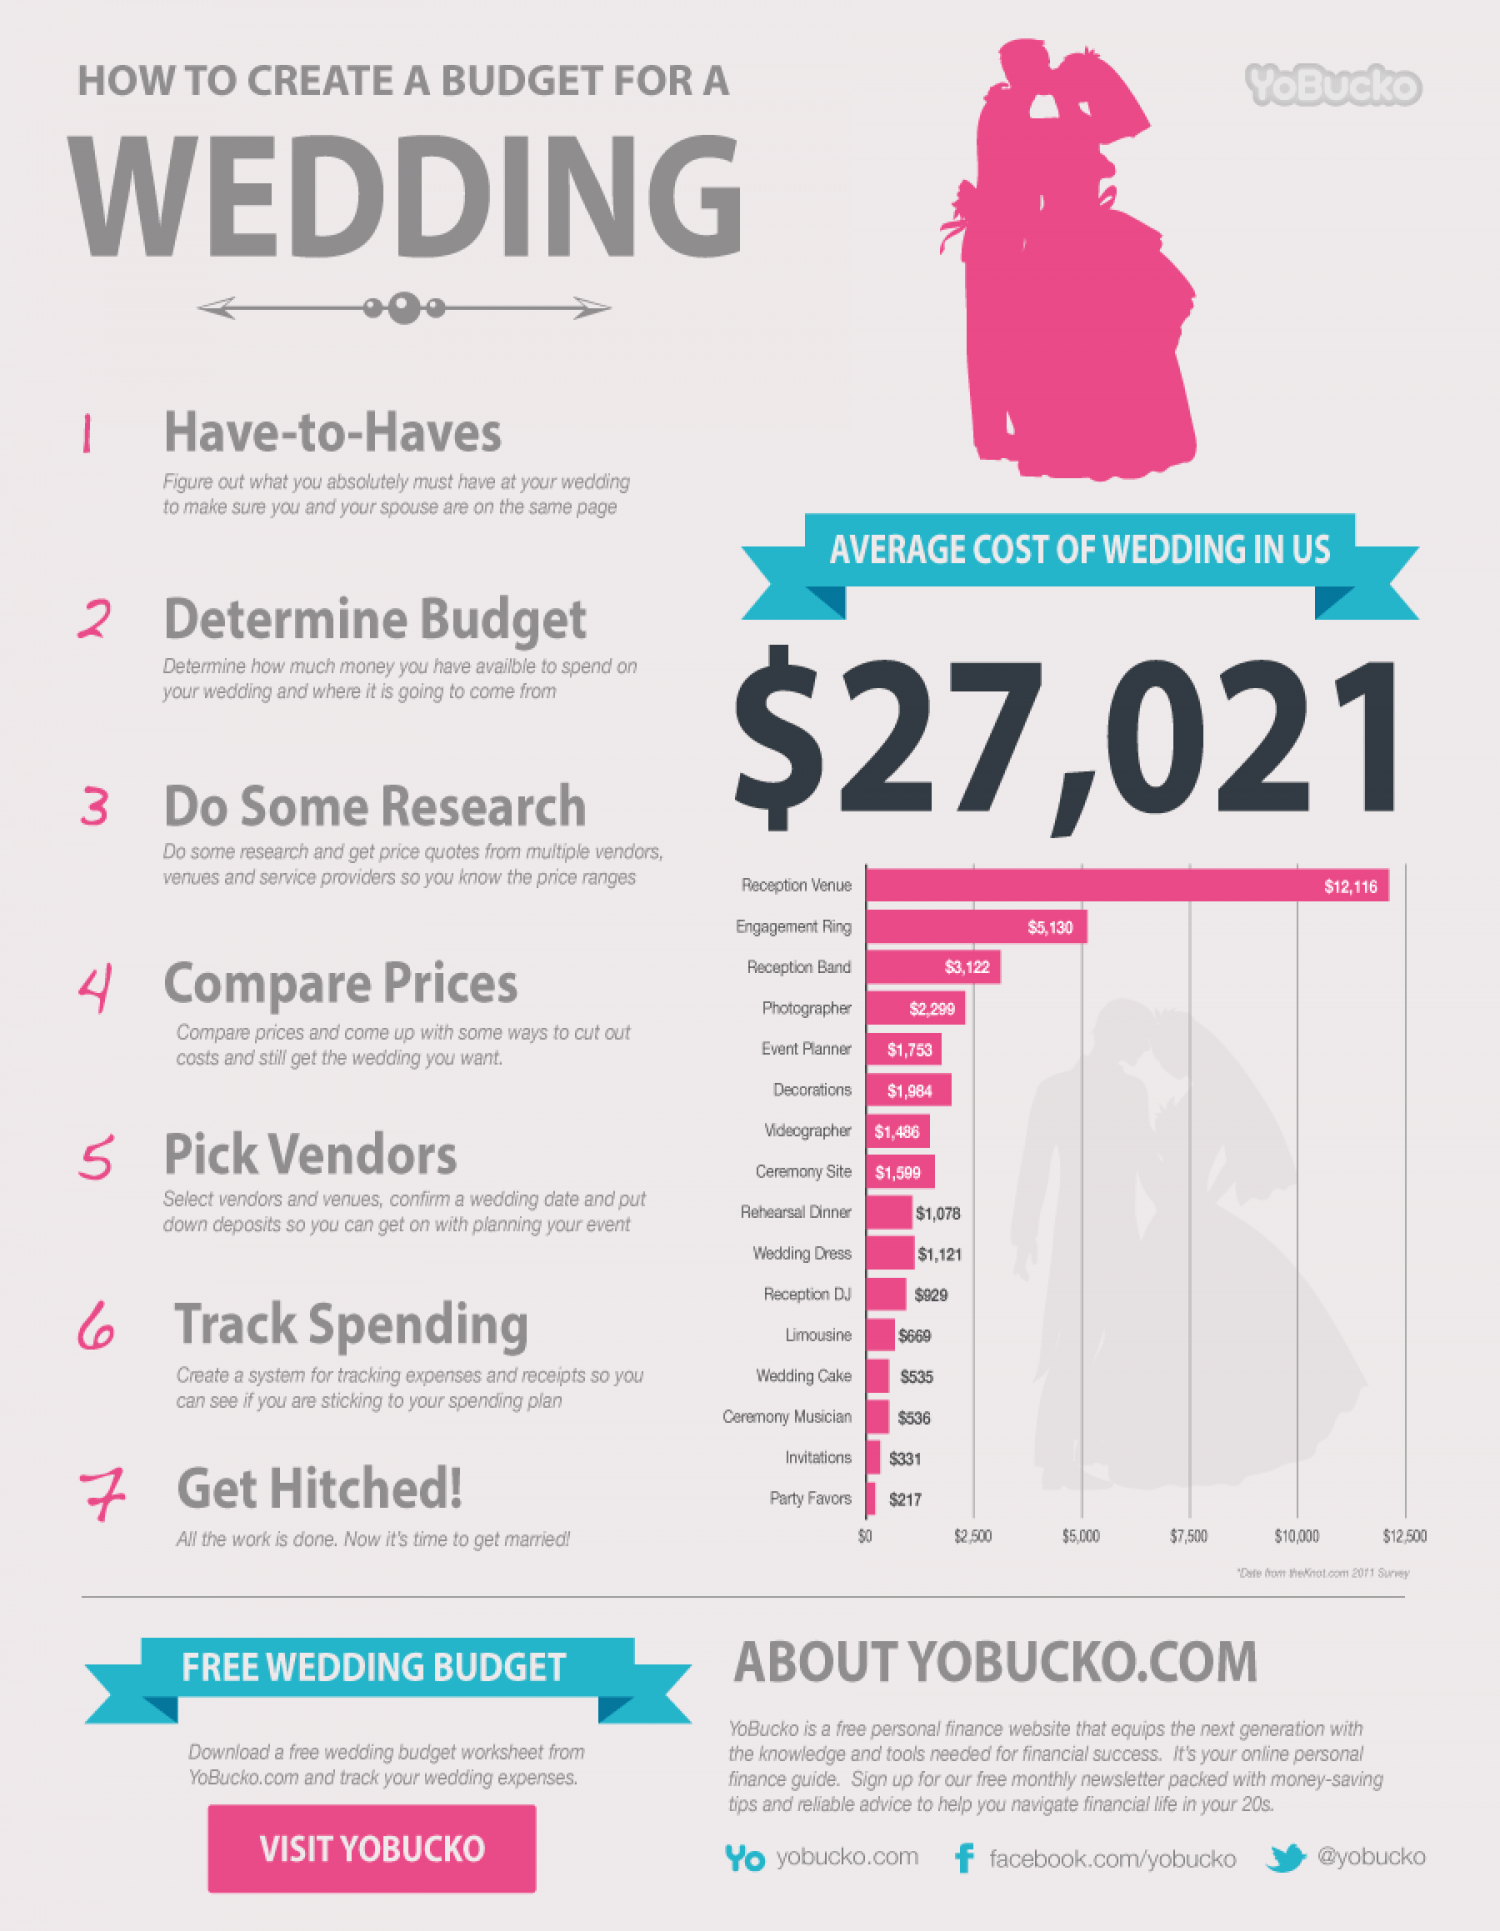 Give Me Your Best Budget Wedding Ideas